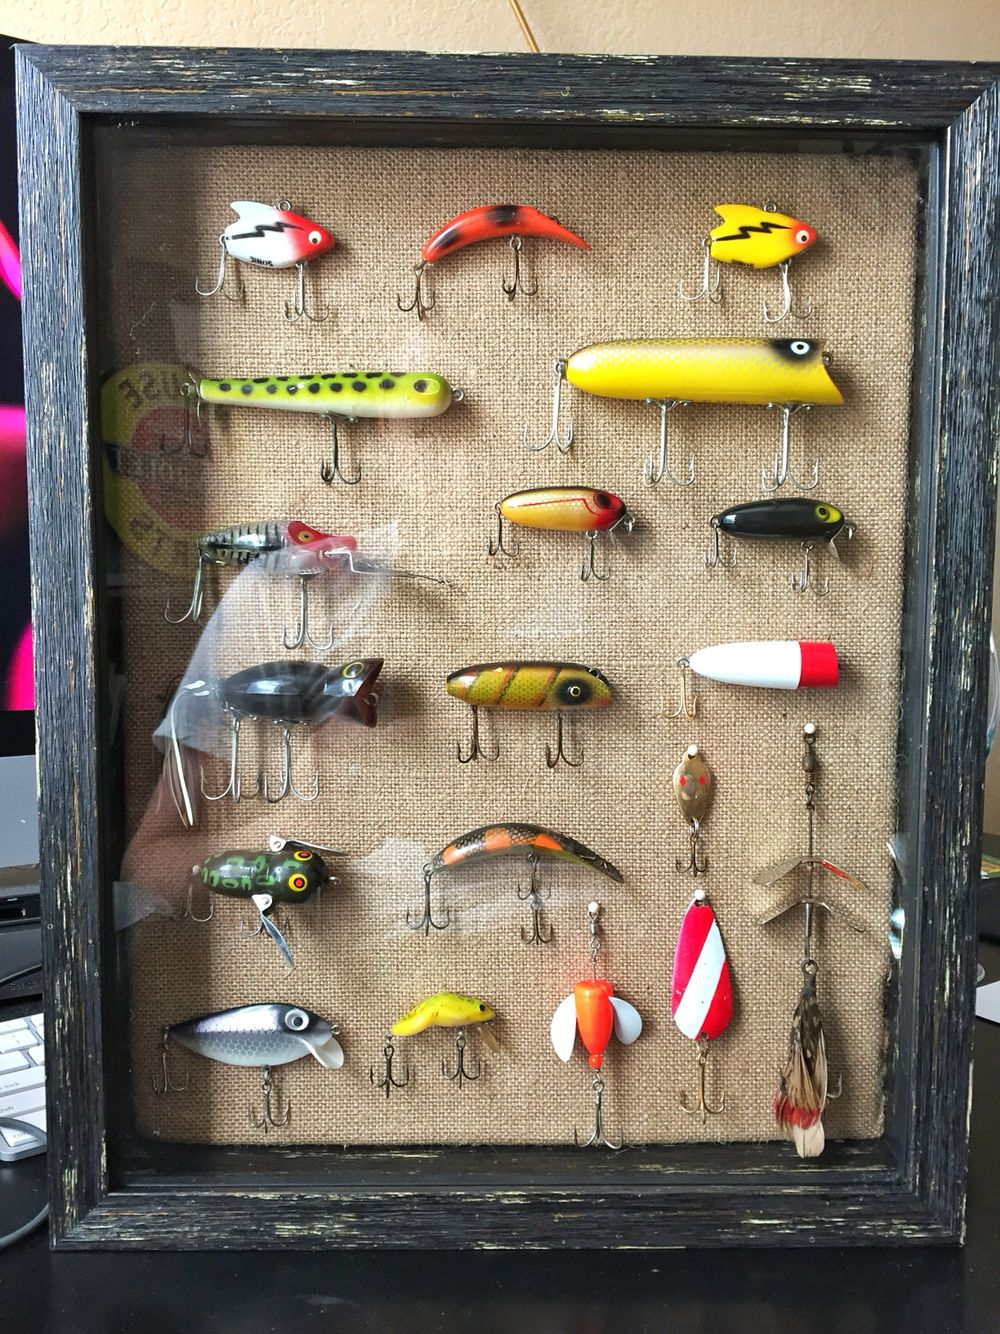 My Home Made Fishing Lure Shadow Box Woodworking